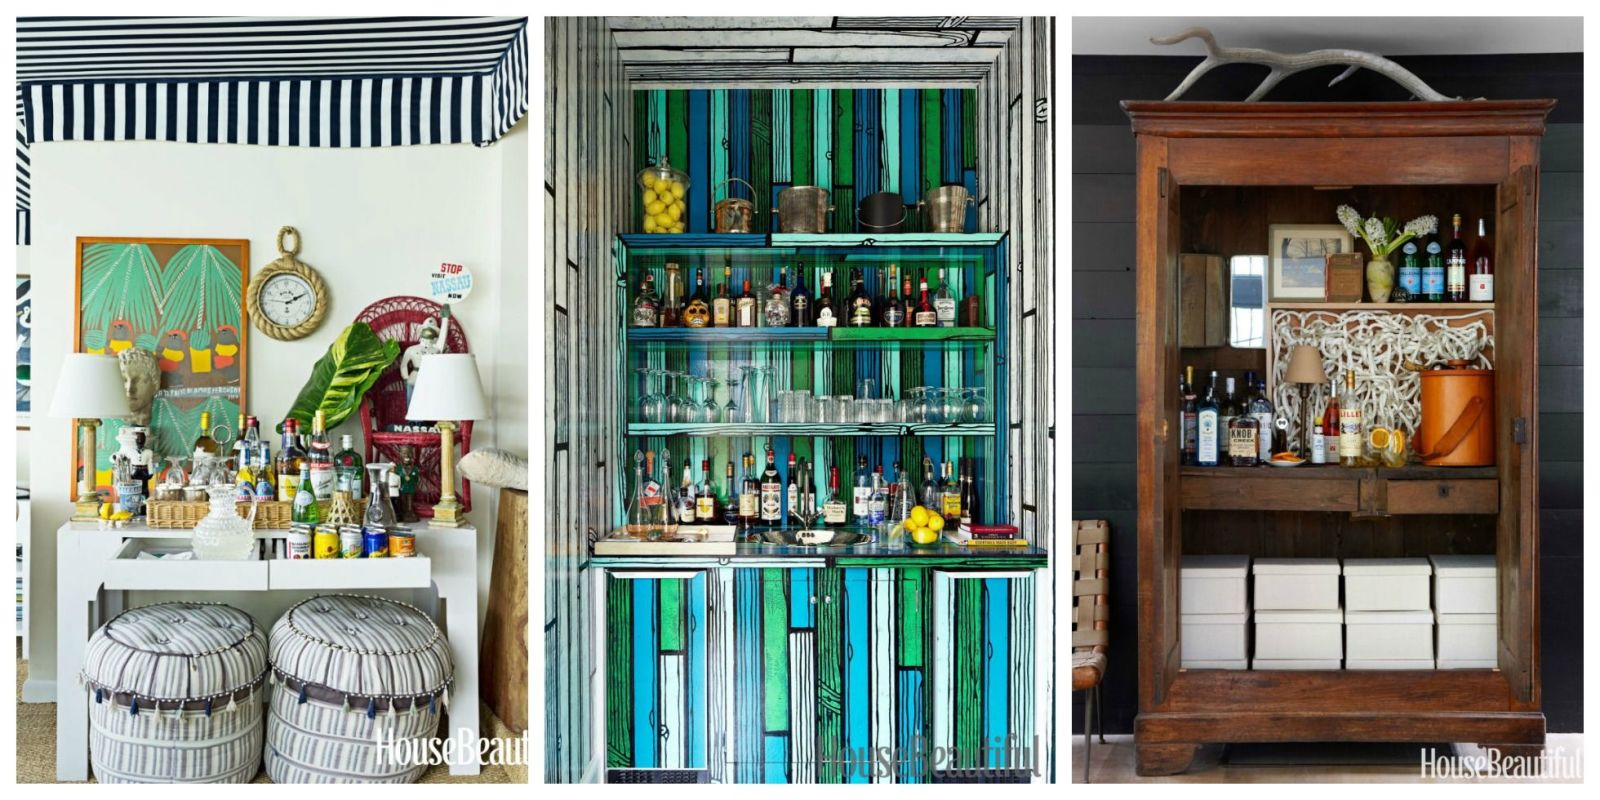 Bar Design Ideas For Home saveemail annie santulli designs 30 Home Bar Design Ideas Furniture For Home Bars